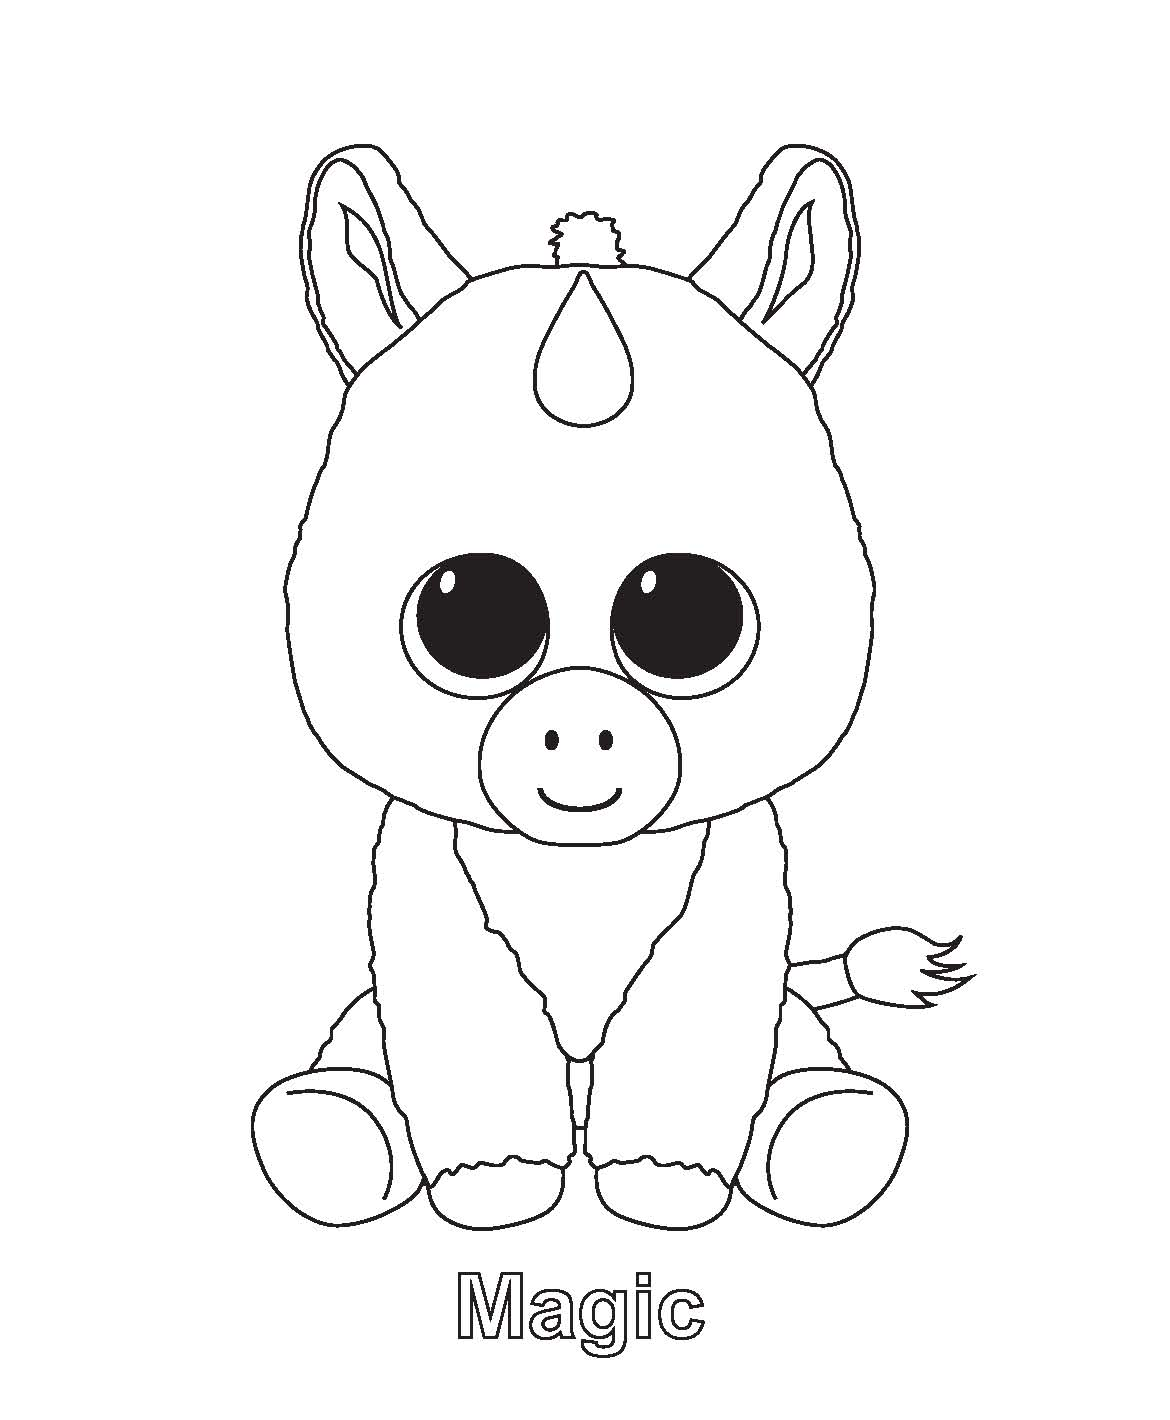 ty art gallery - Coloring Pages Unicorn